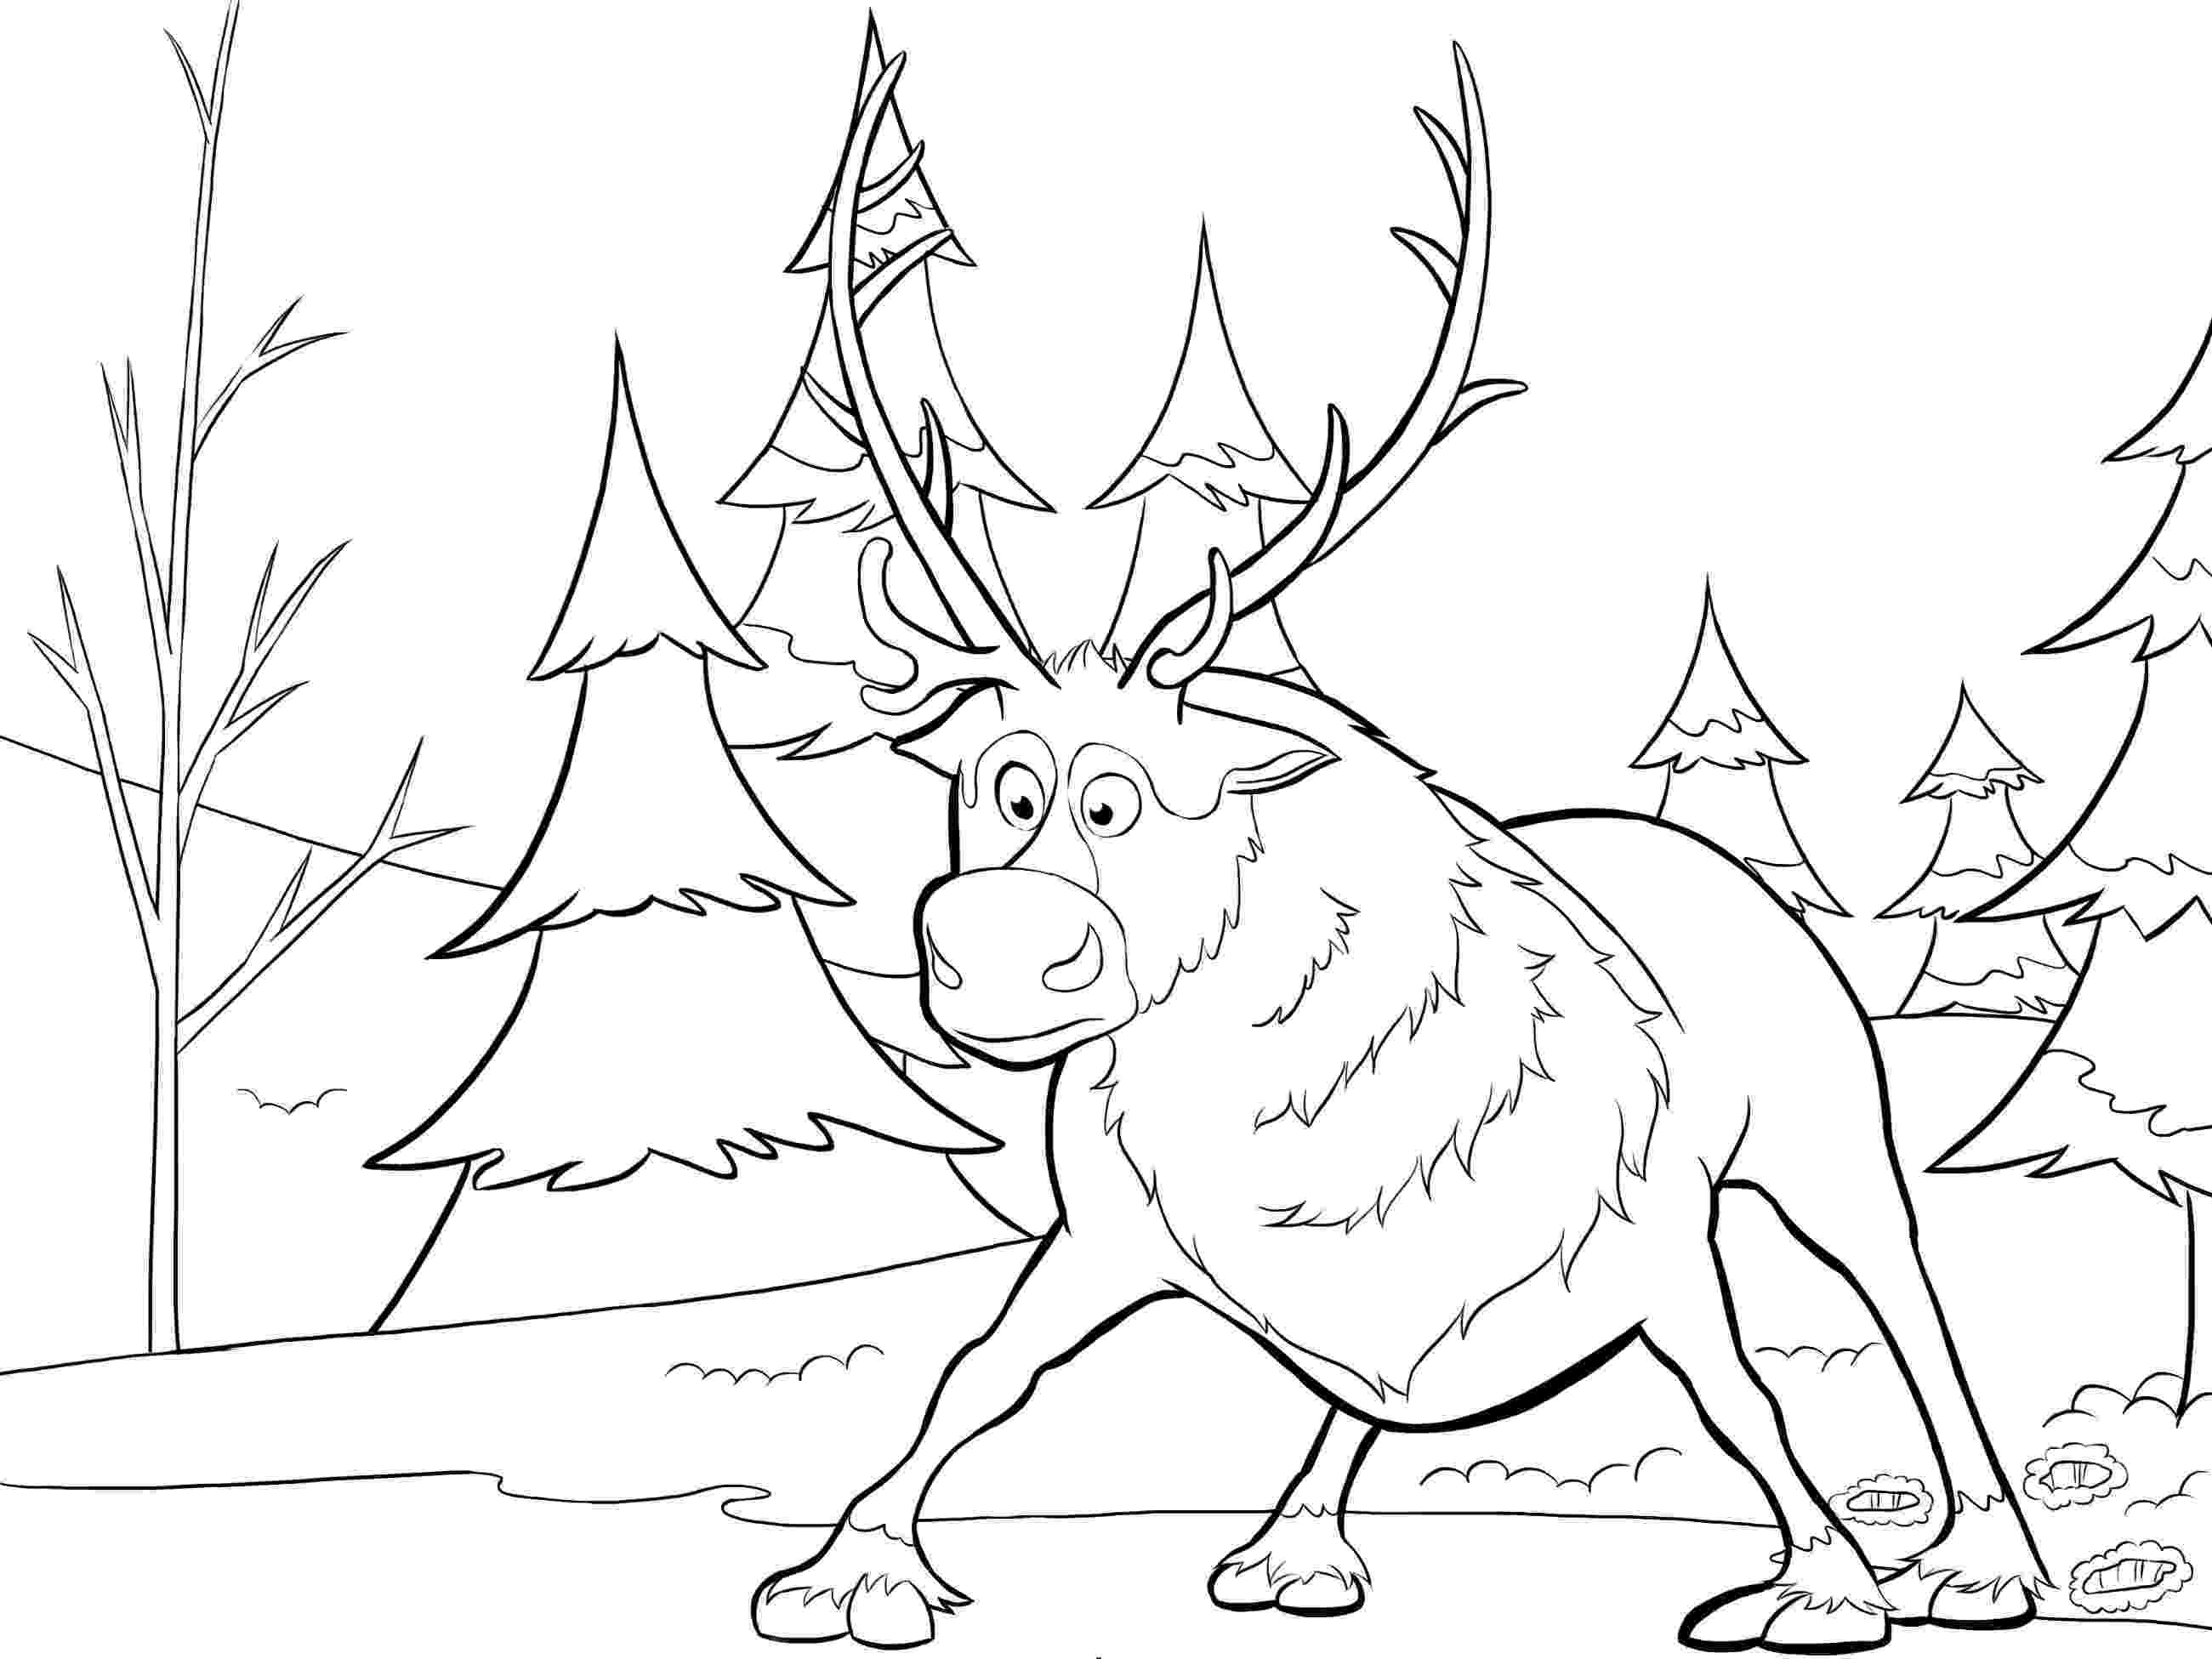 coloring pages printable frozen free frozen printable coloring activity pages plus free pages coloring frozen printable